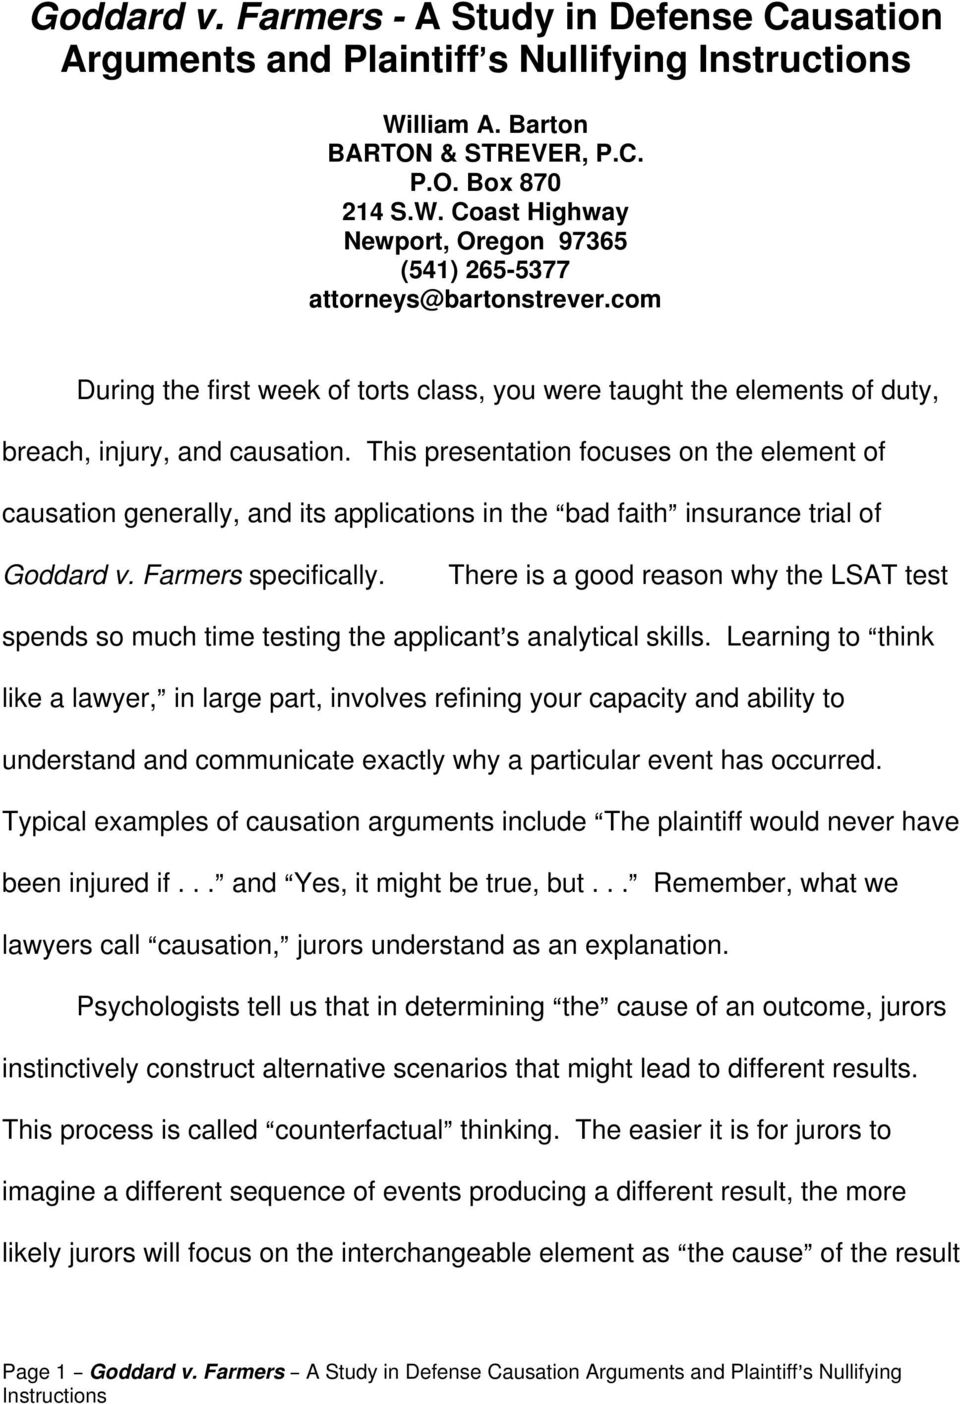 This presentation focuses on the element of causation generally, and its applications in the Abad faith@ insurance trial of Goddard v. Farmers specifically.